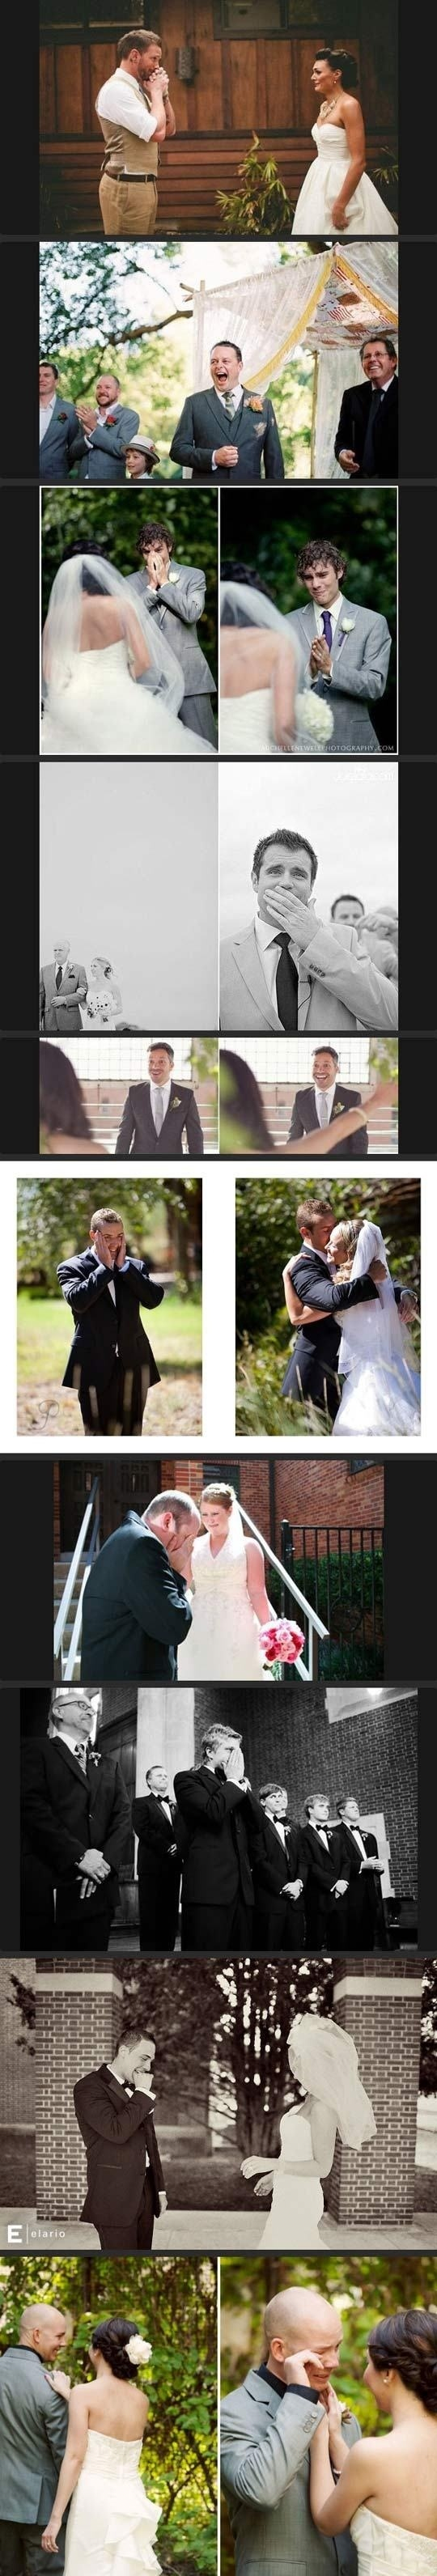 Groom's reactions